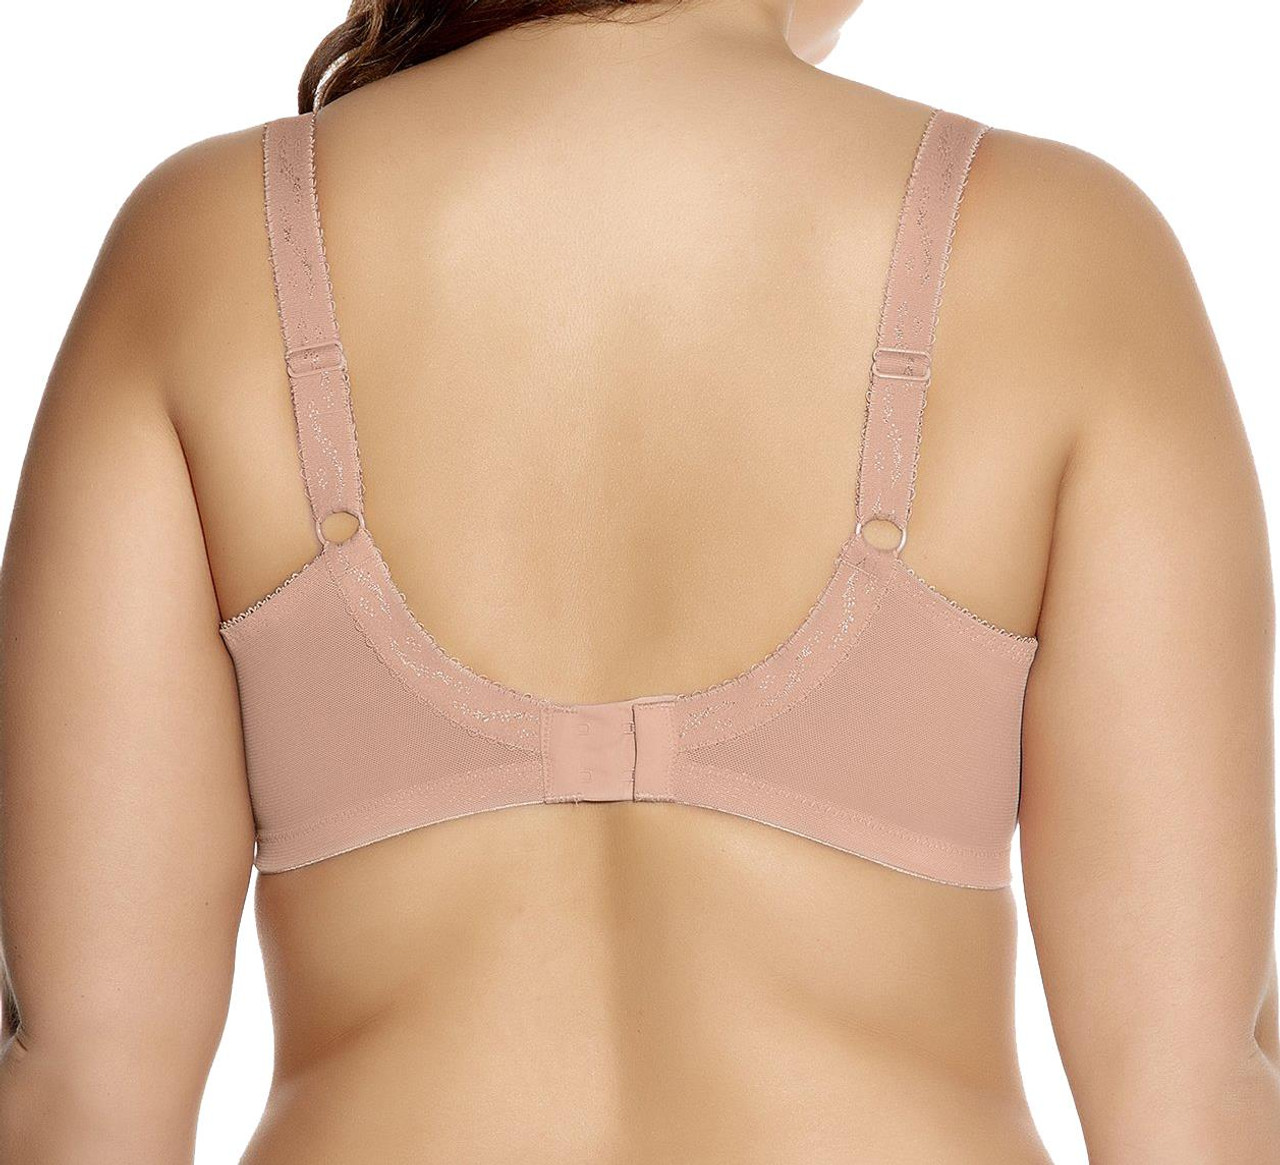 NUE Goddess Keira GD6090 W Underwired Banded Bra Nude 38K CS